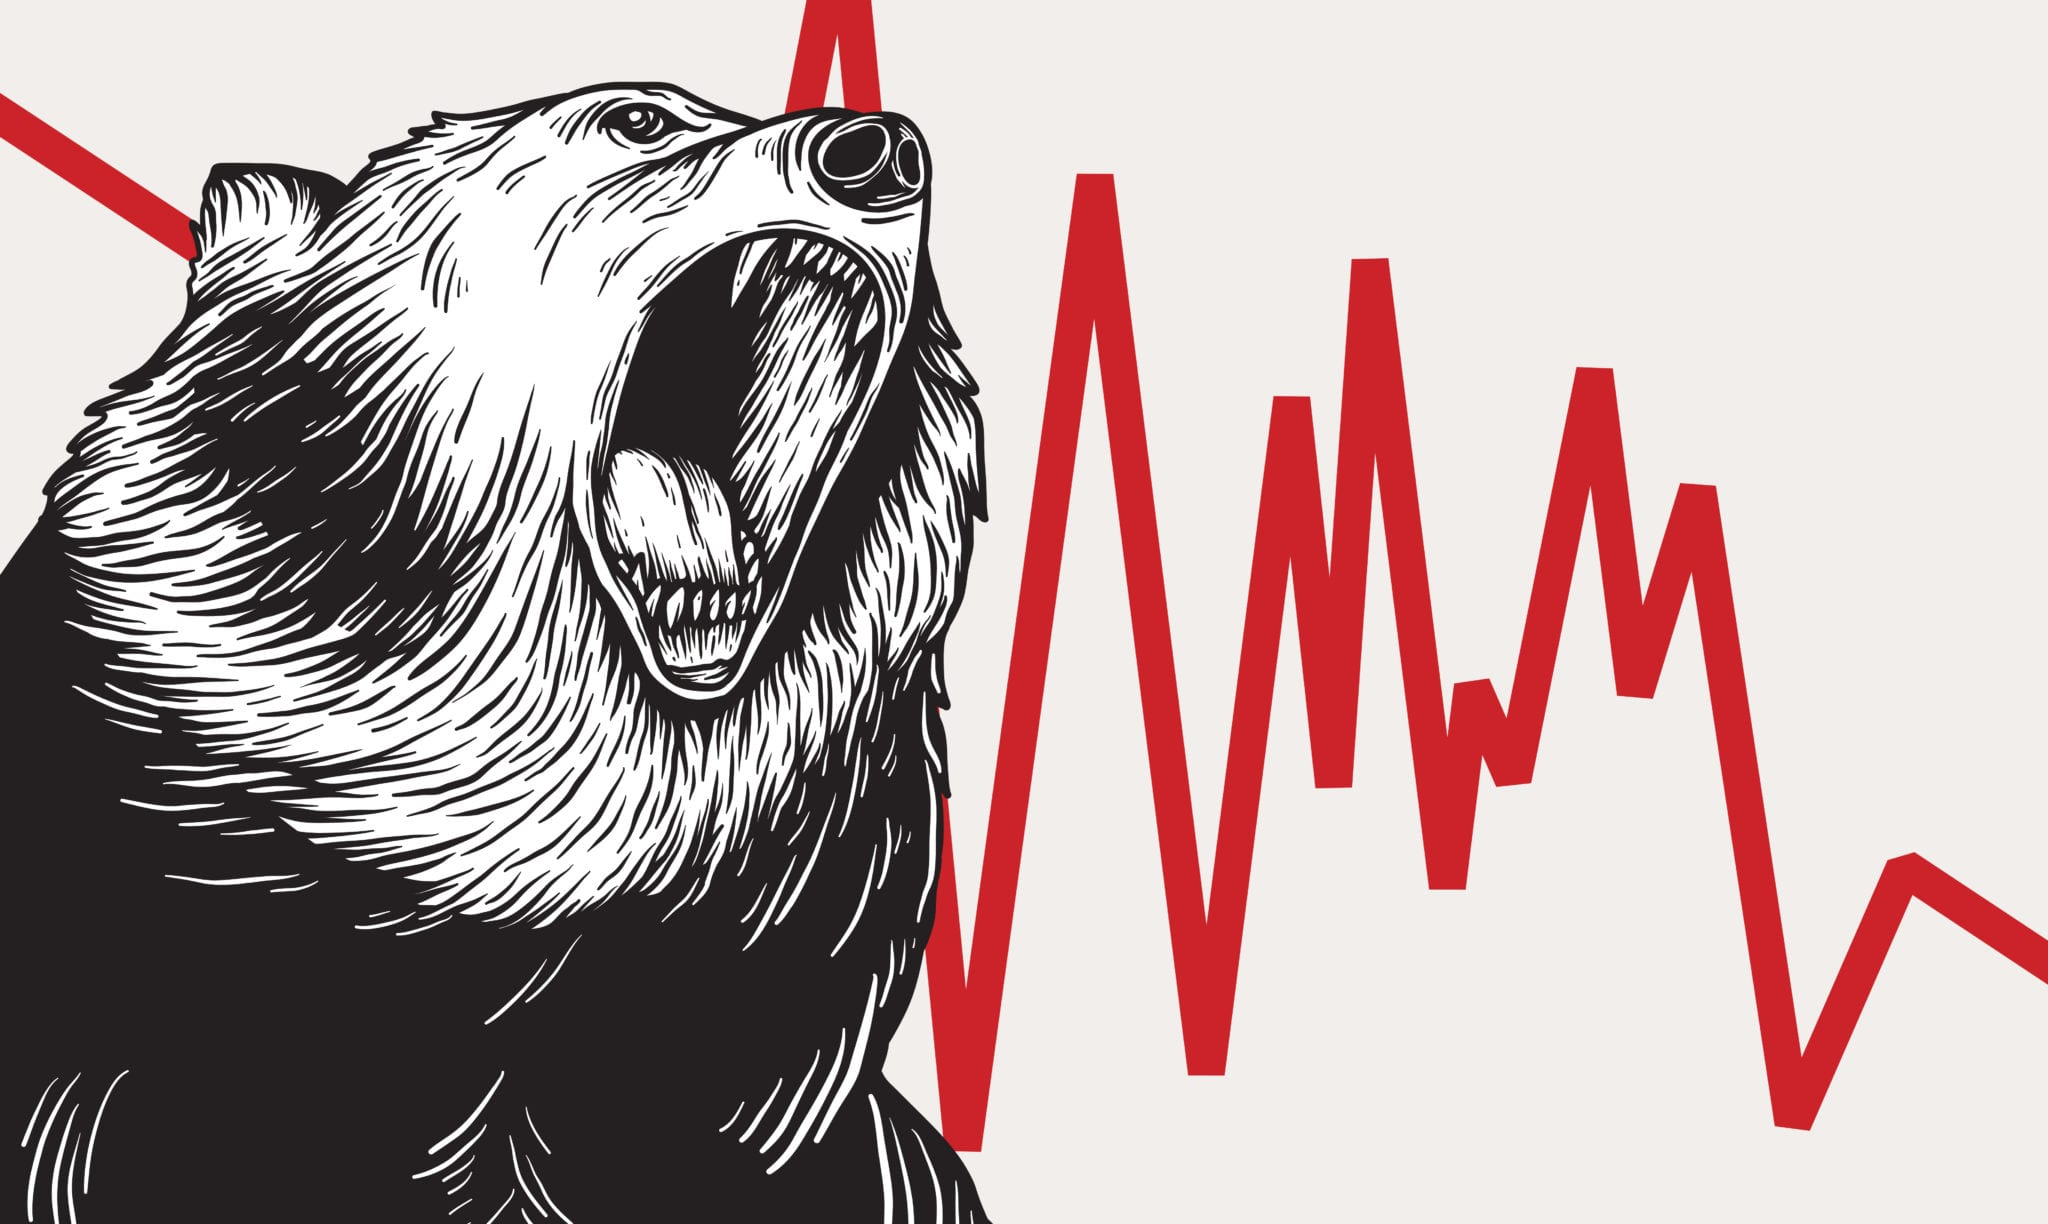 Graphic of bear market